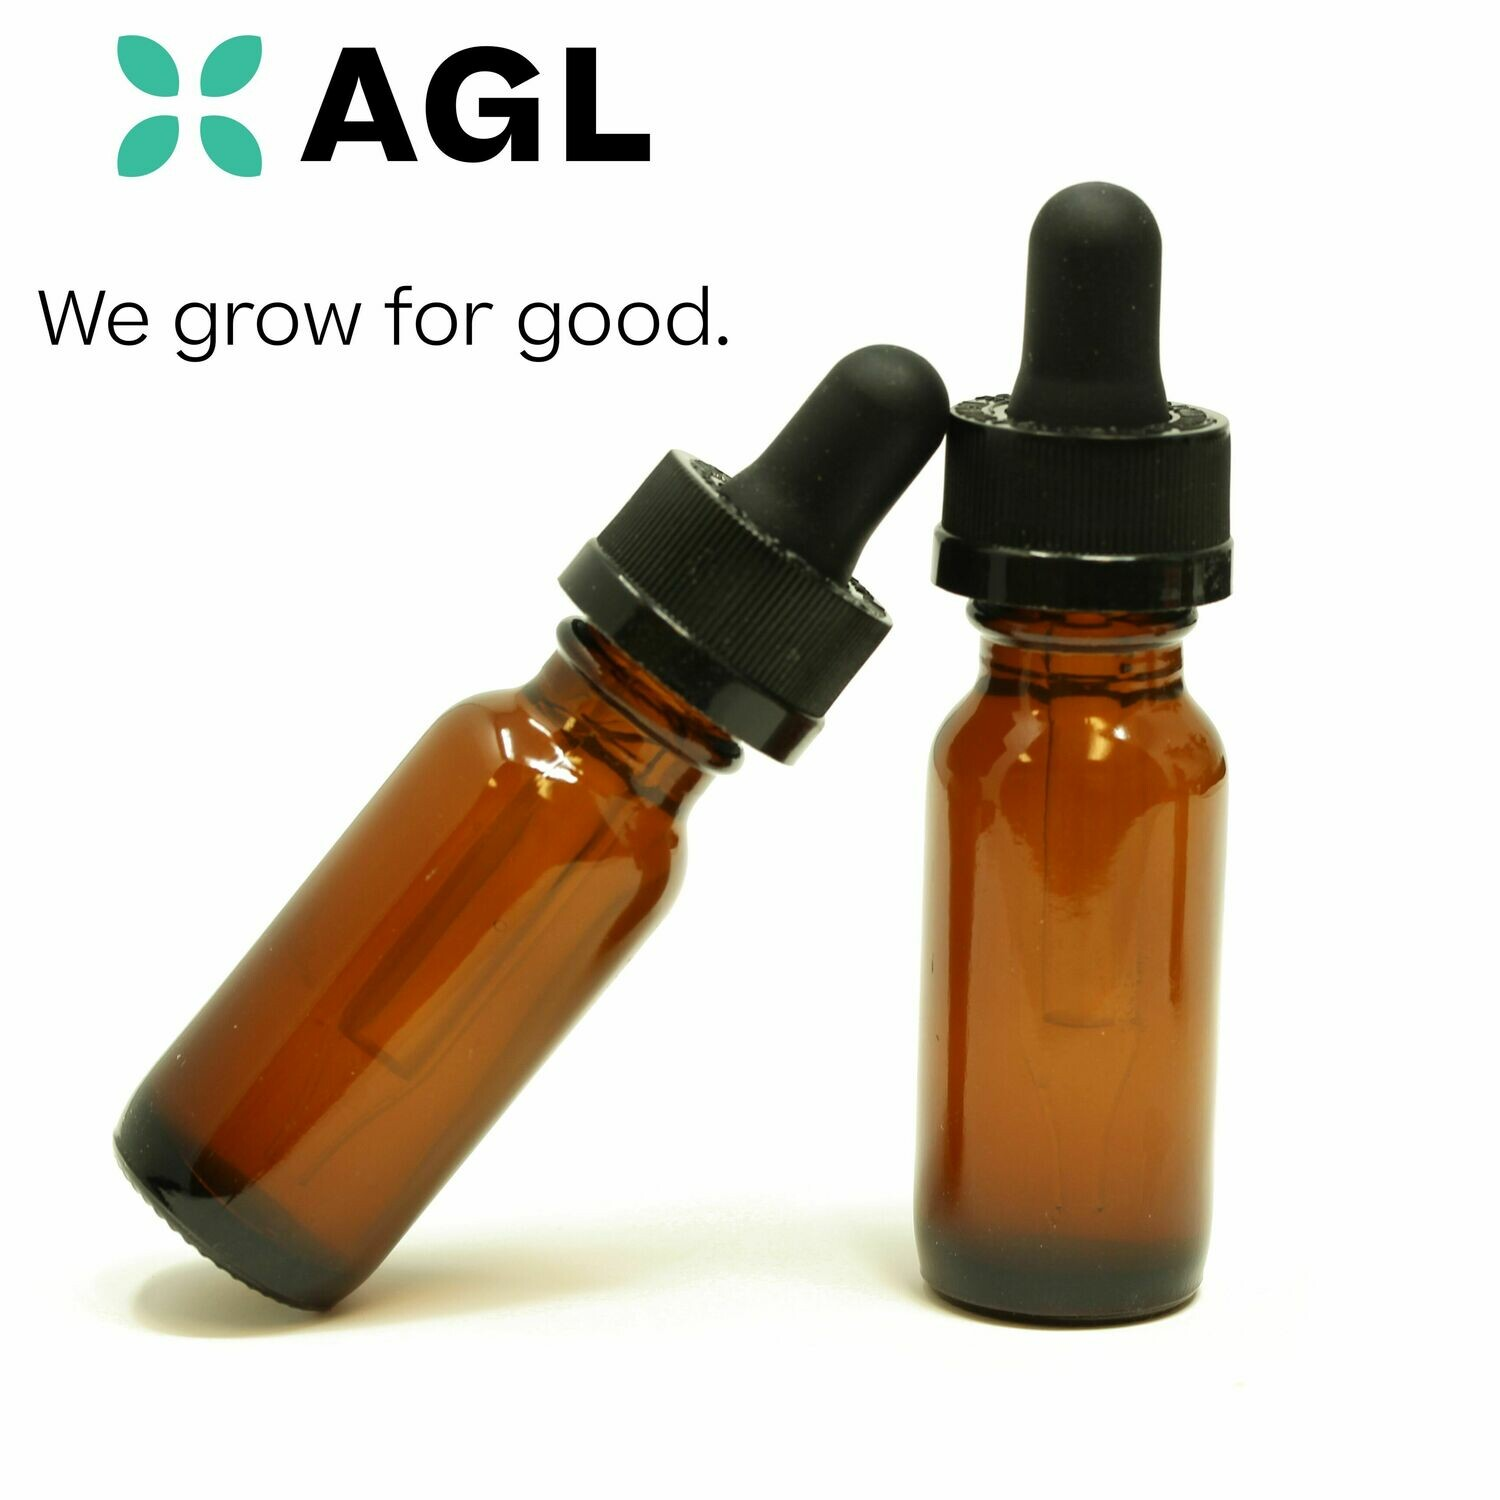 Hybridol J THCA Oral Solution NDC: 8252 - 300mg (AGL)